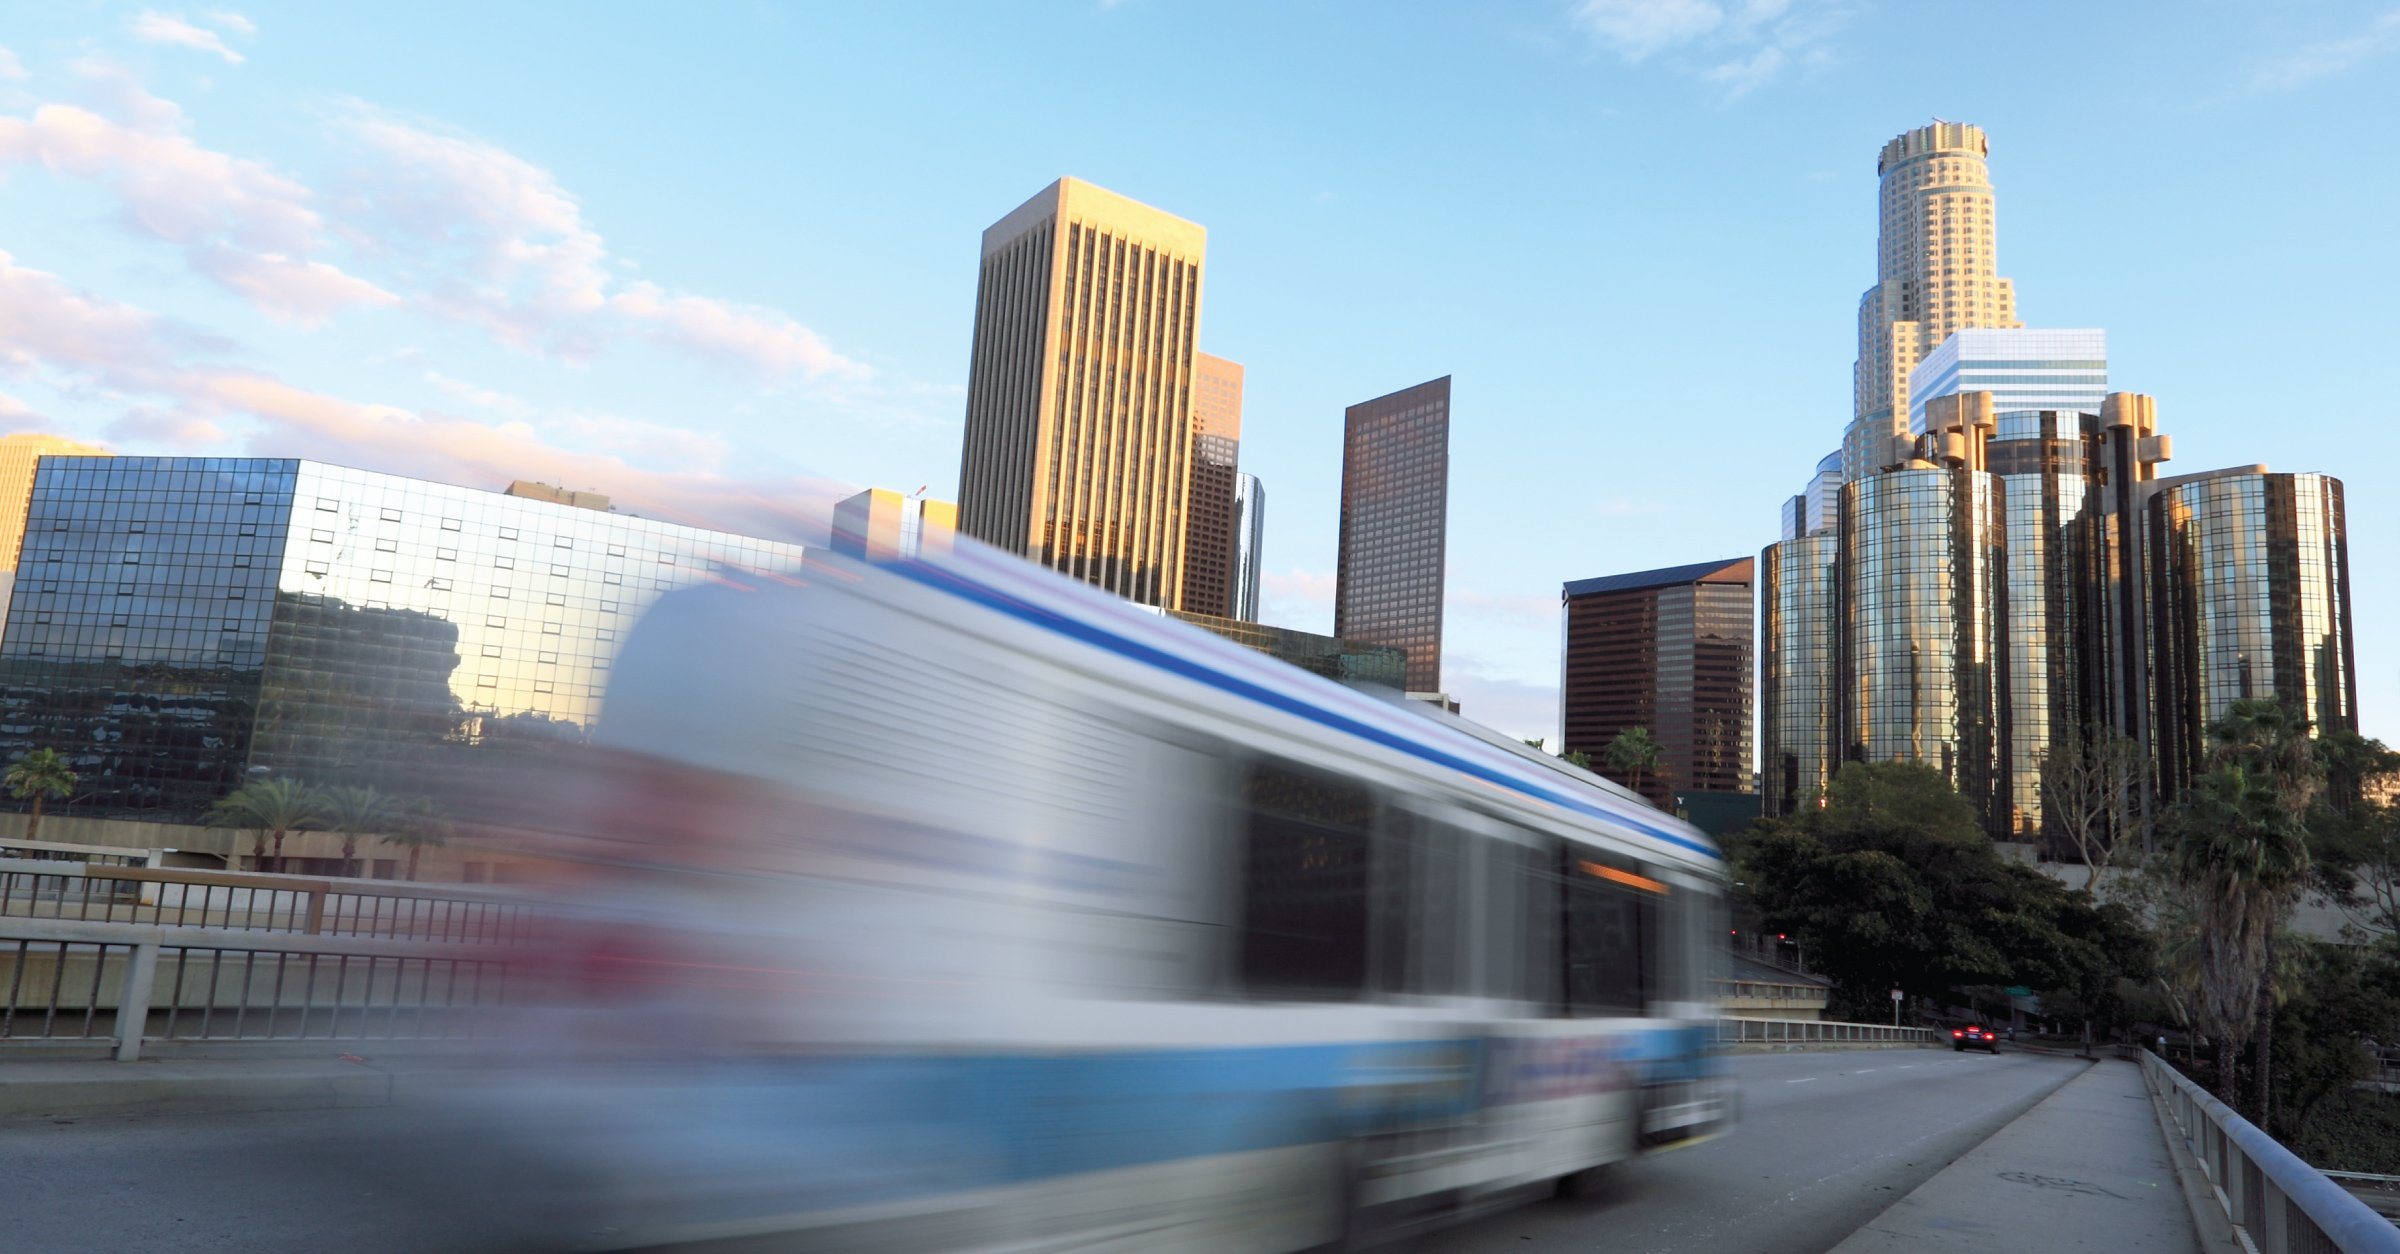 AMPLY, AECOM Partner to Bolster Bus Electrification for Transit Agencies